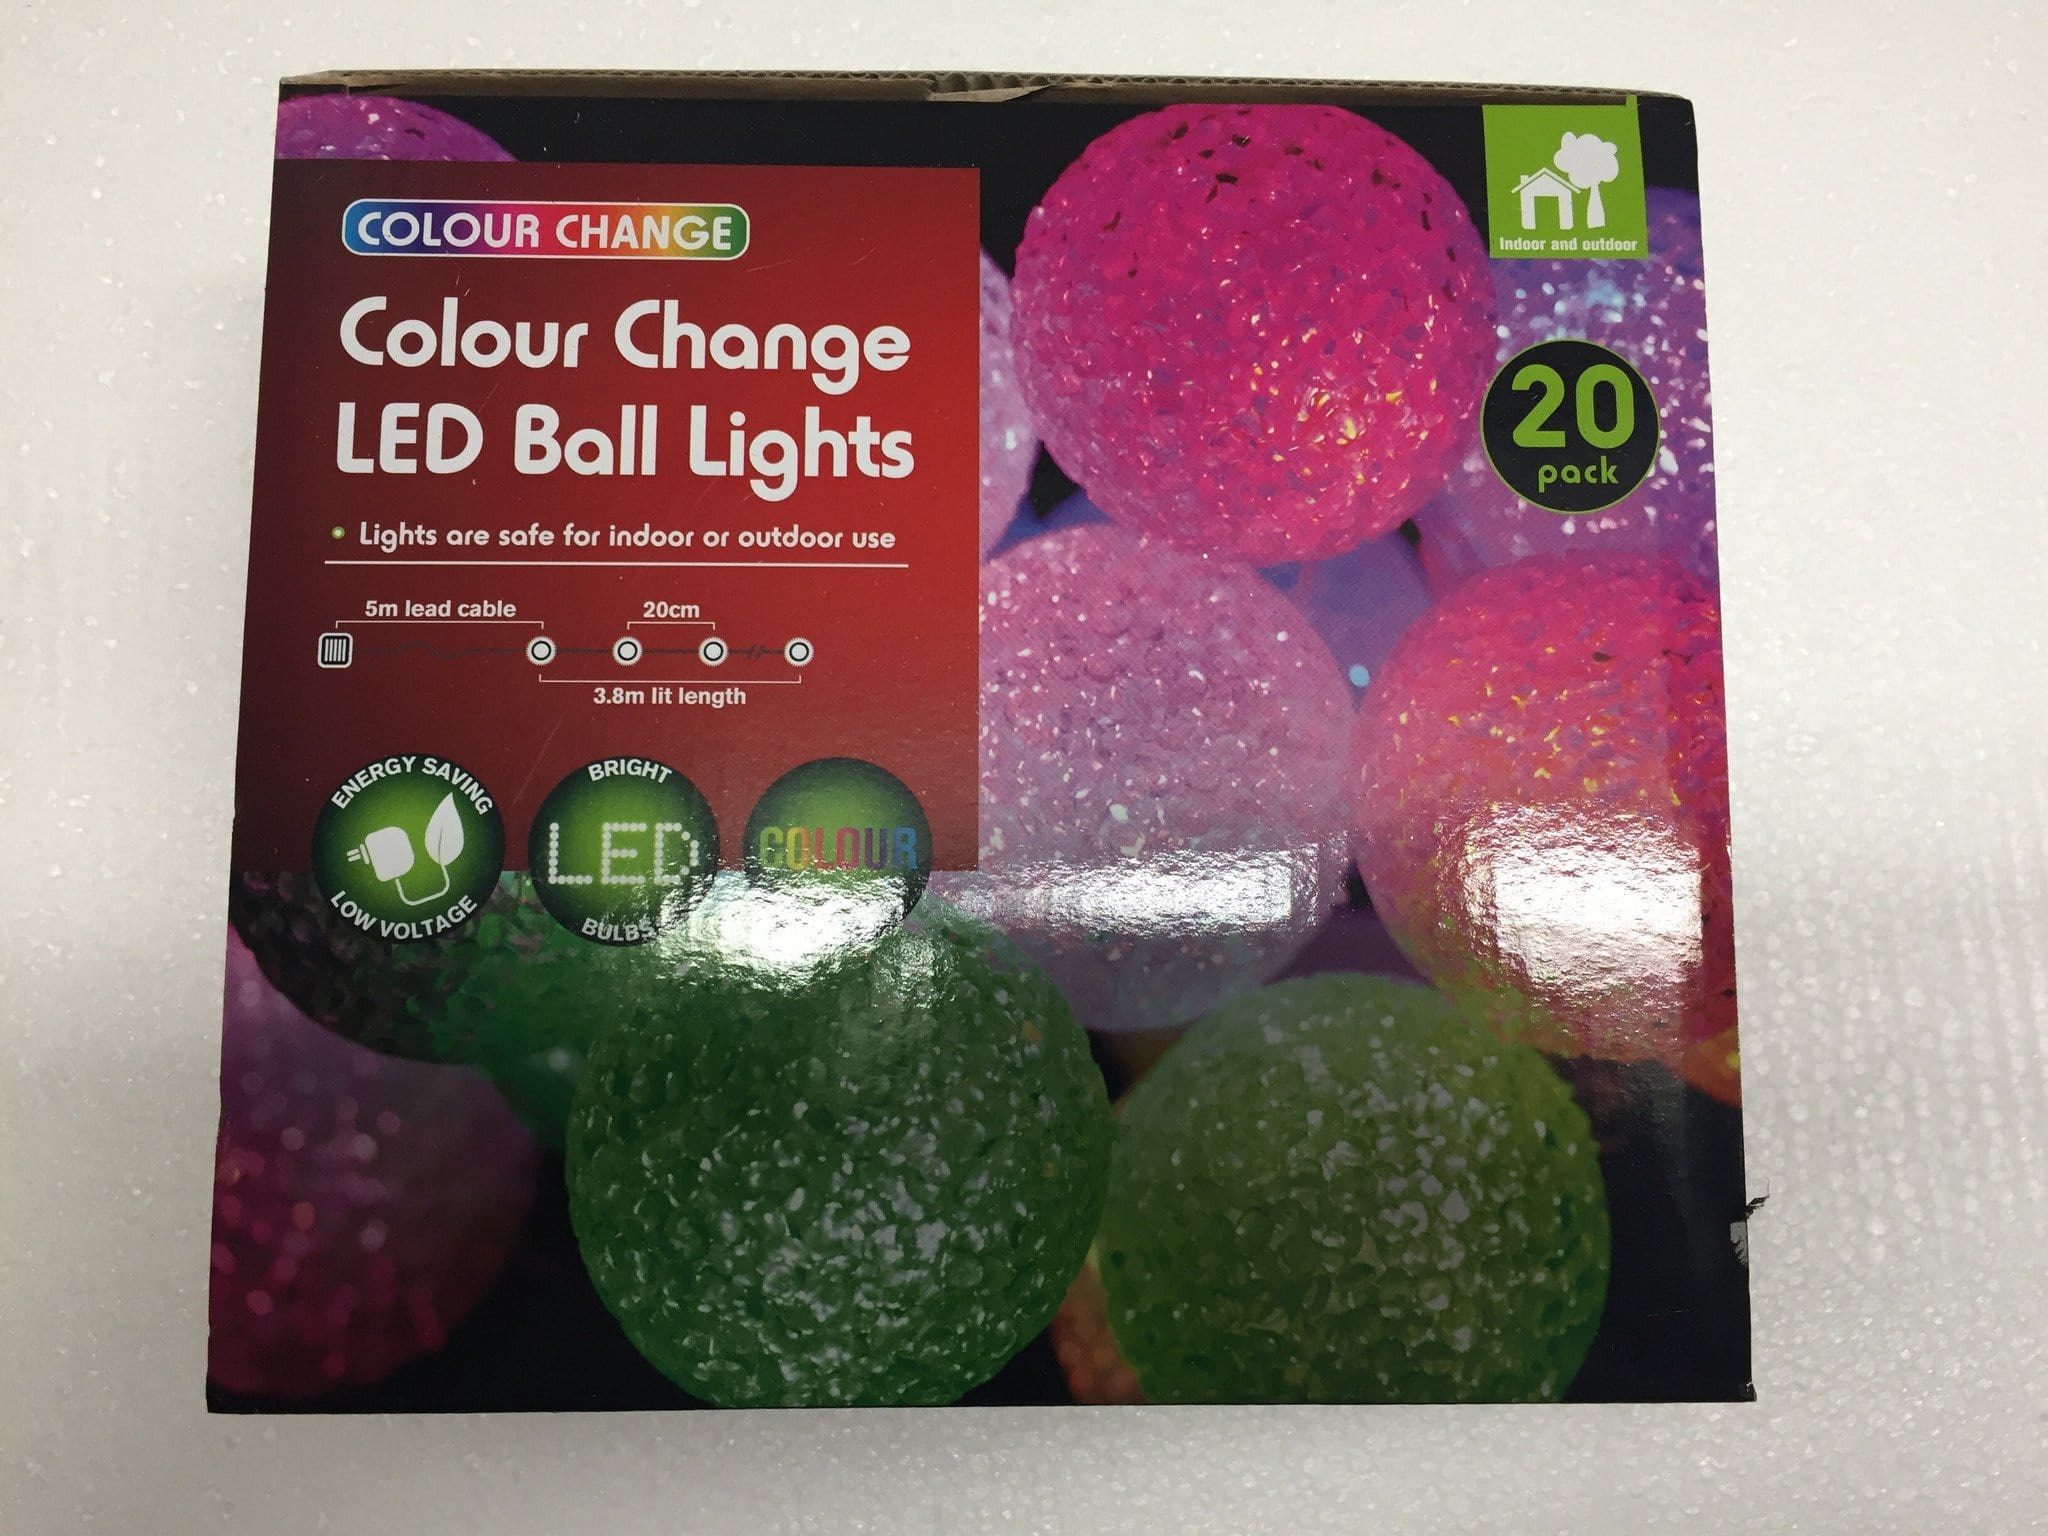 Colour Change LED Ball Lights - 20 Pack - Christmas World